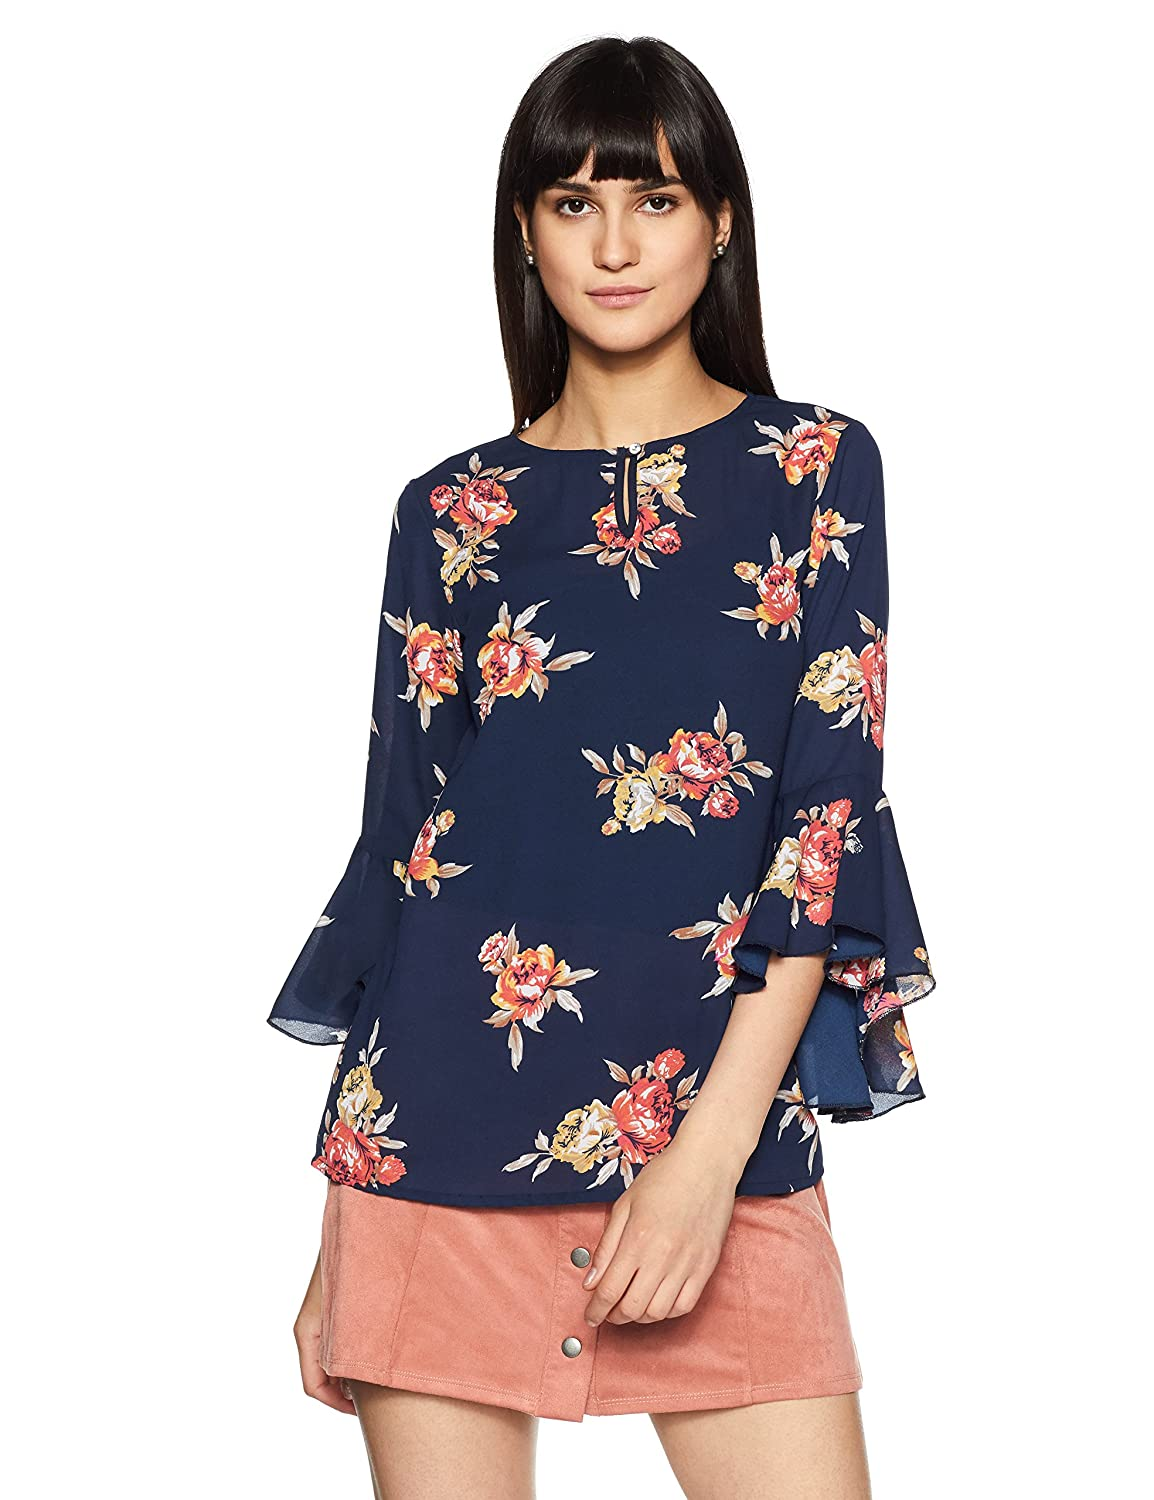 Styleville.in Women's Floral Regular Fit Top